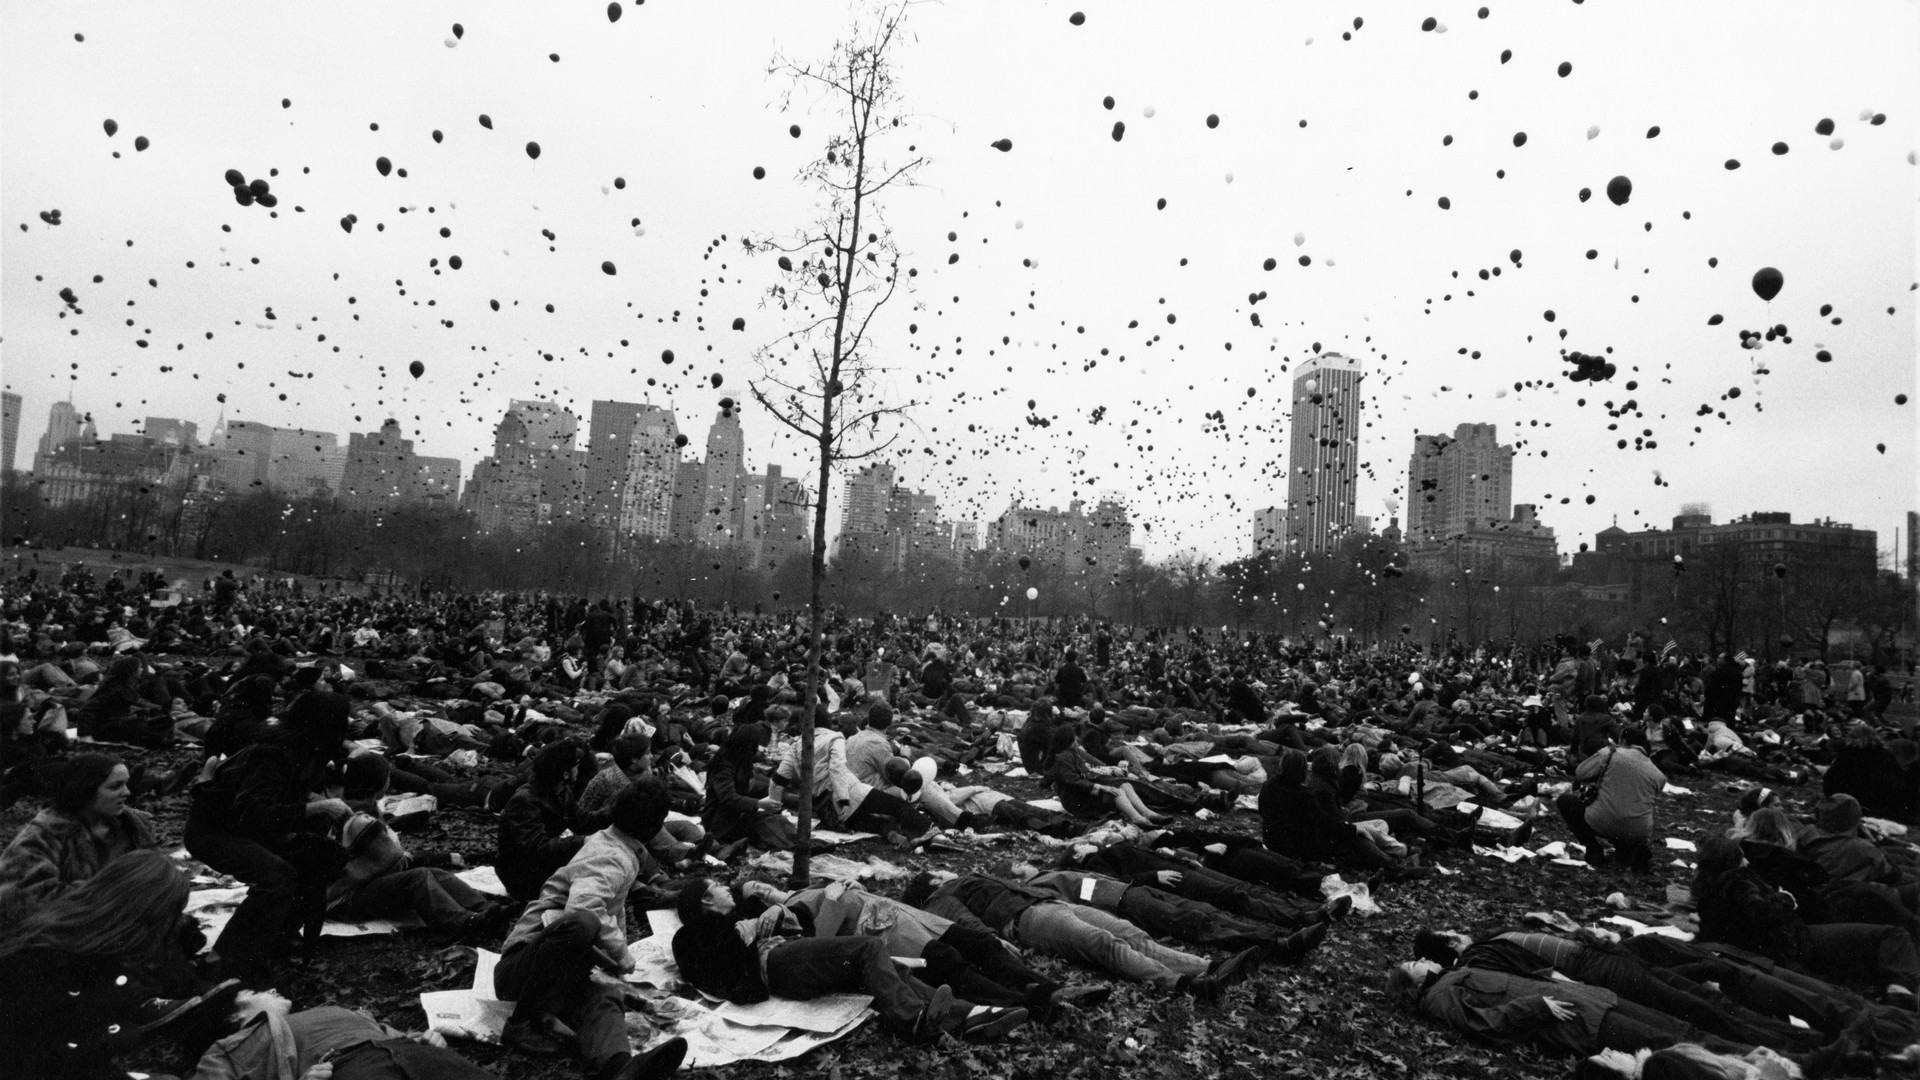 Garry Winogrand, Peace Demonstration, Central Park, New York, 1970